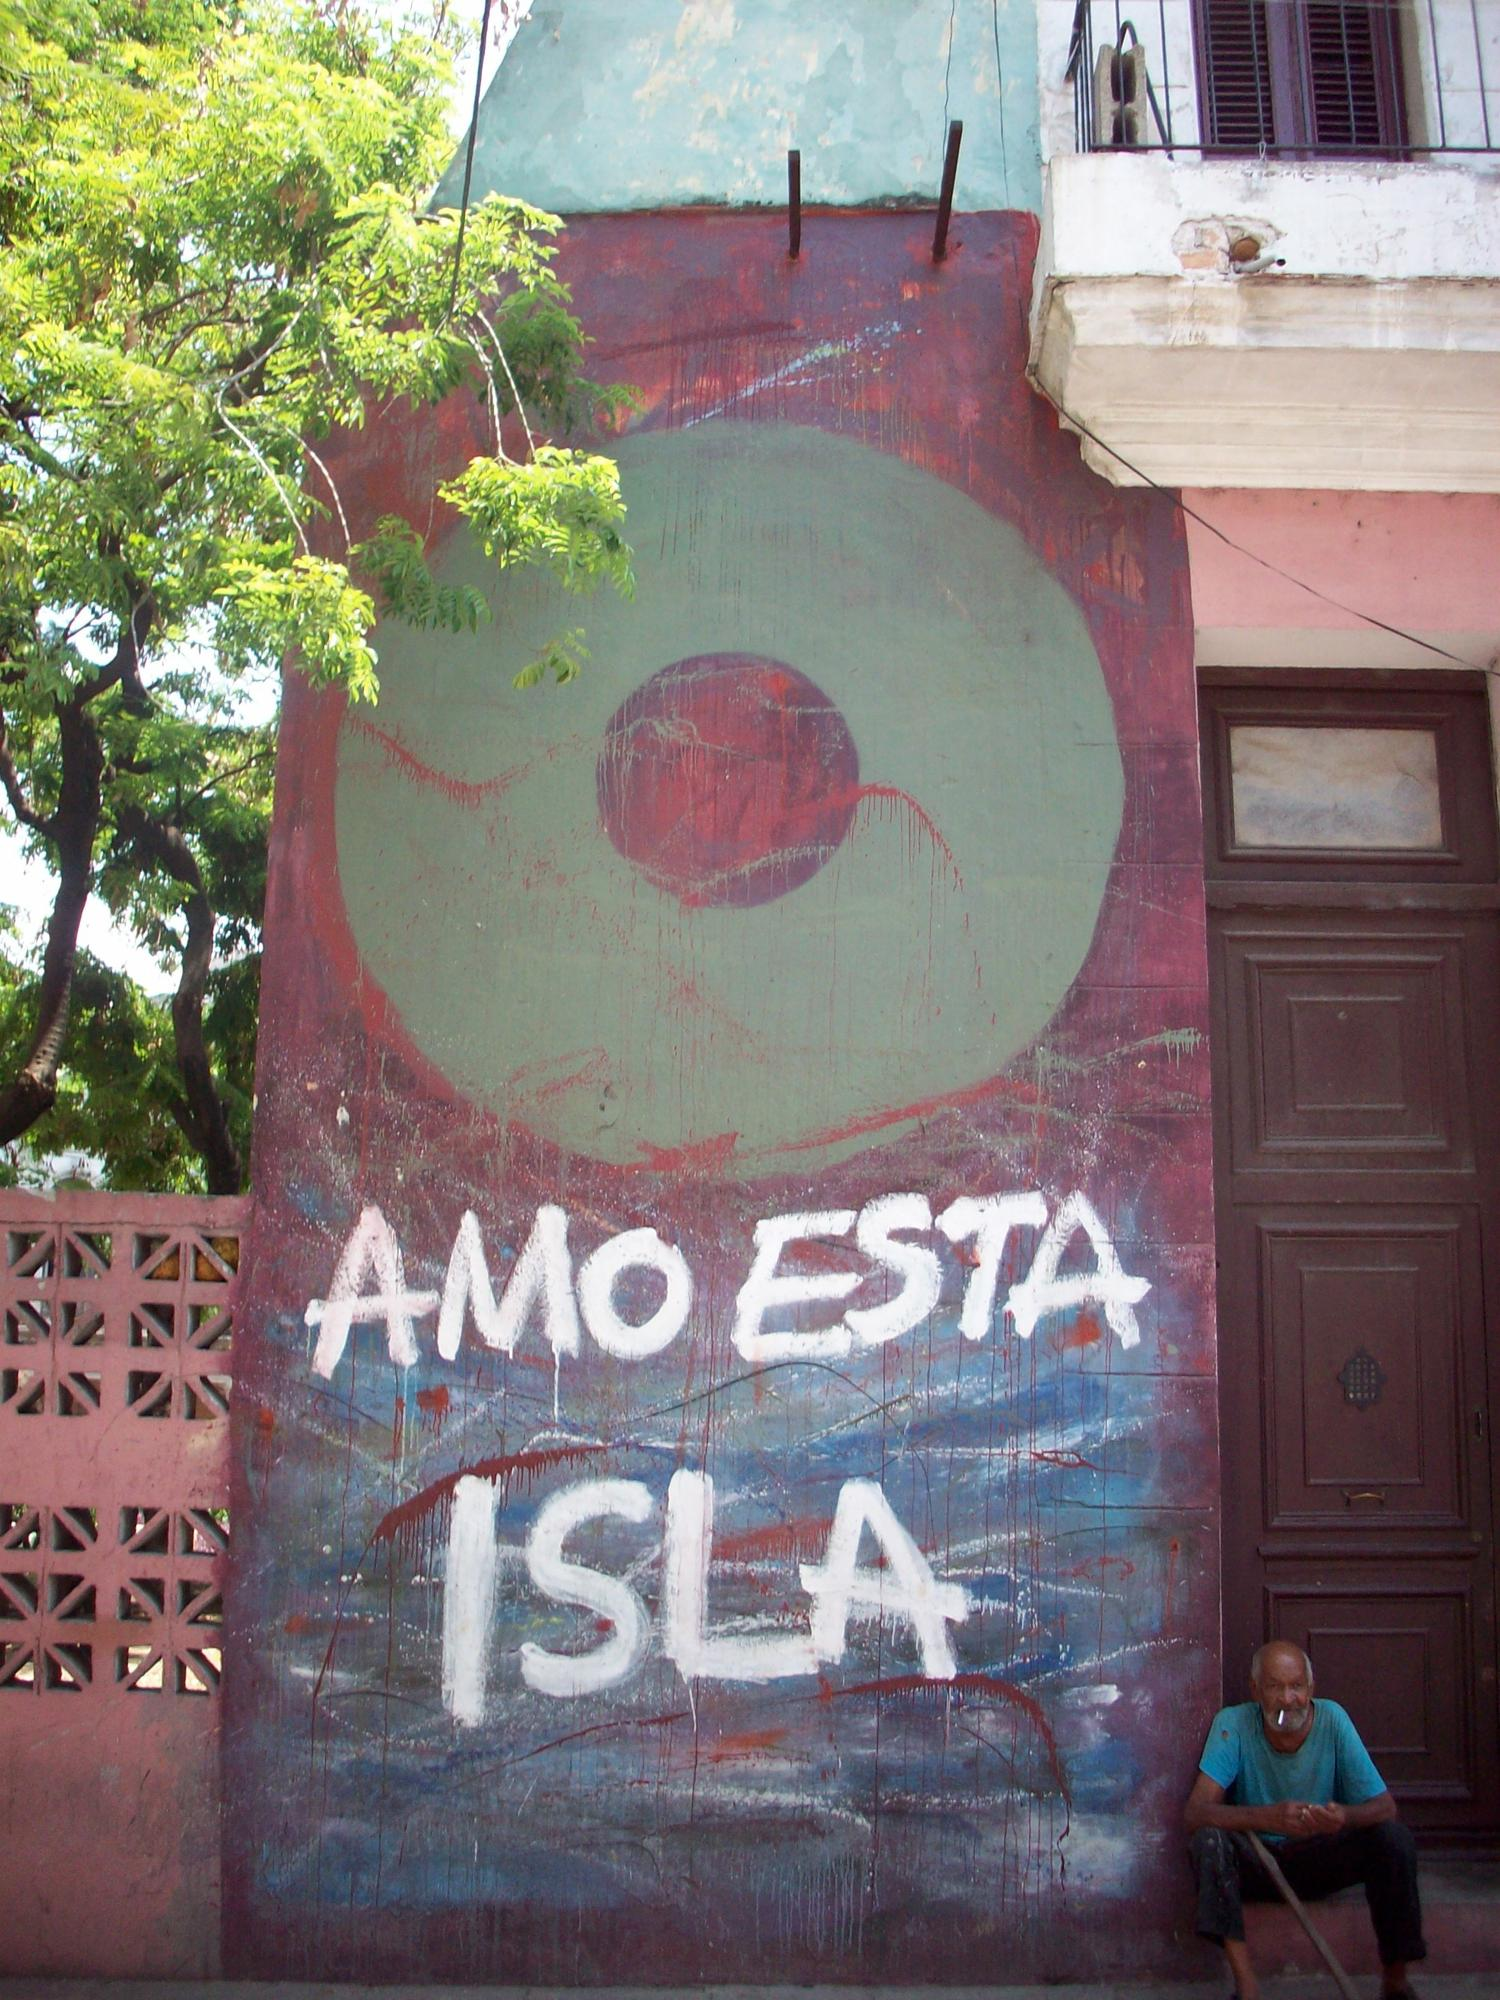 island cuba political essay Bibliographic information title political essay on the island of cuba: a critical edition volume 2 of alexander von humboldt in english works, works author.